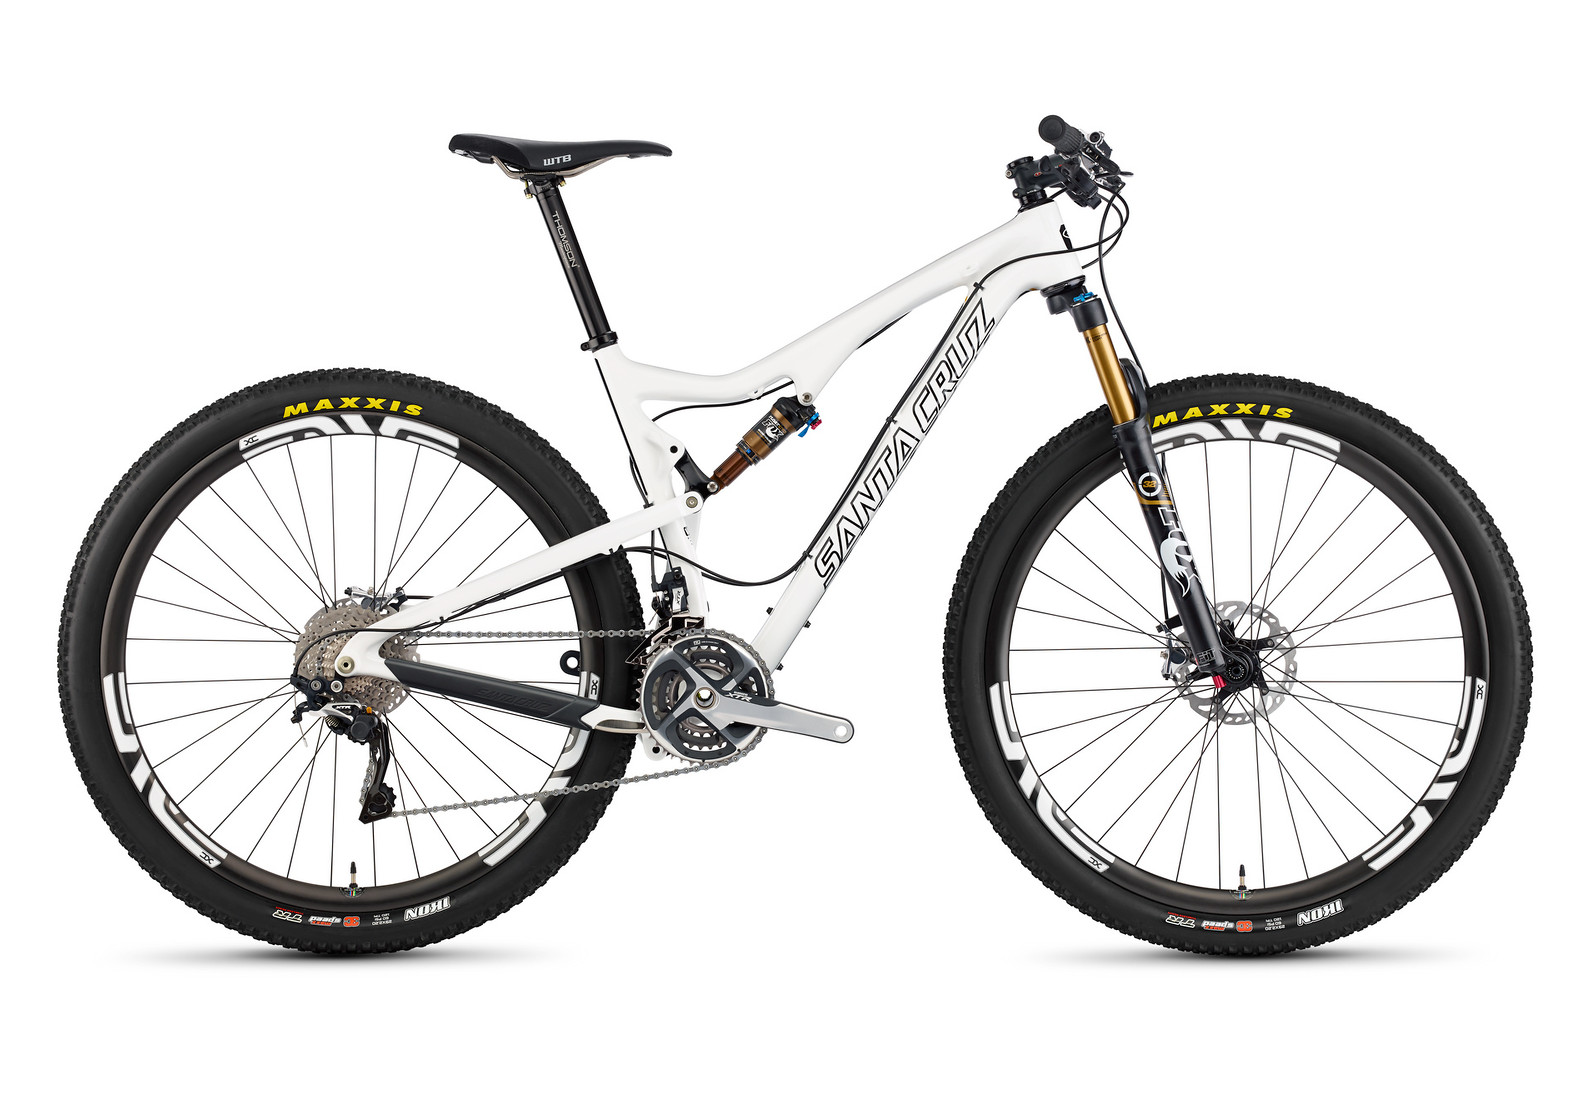 2014 Santa Cruz Tallboy Carbon 2 XX1 XC 29 Bike TallBoy_profile_Carbon_WHT